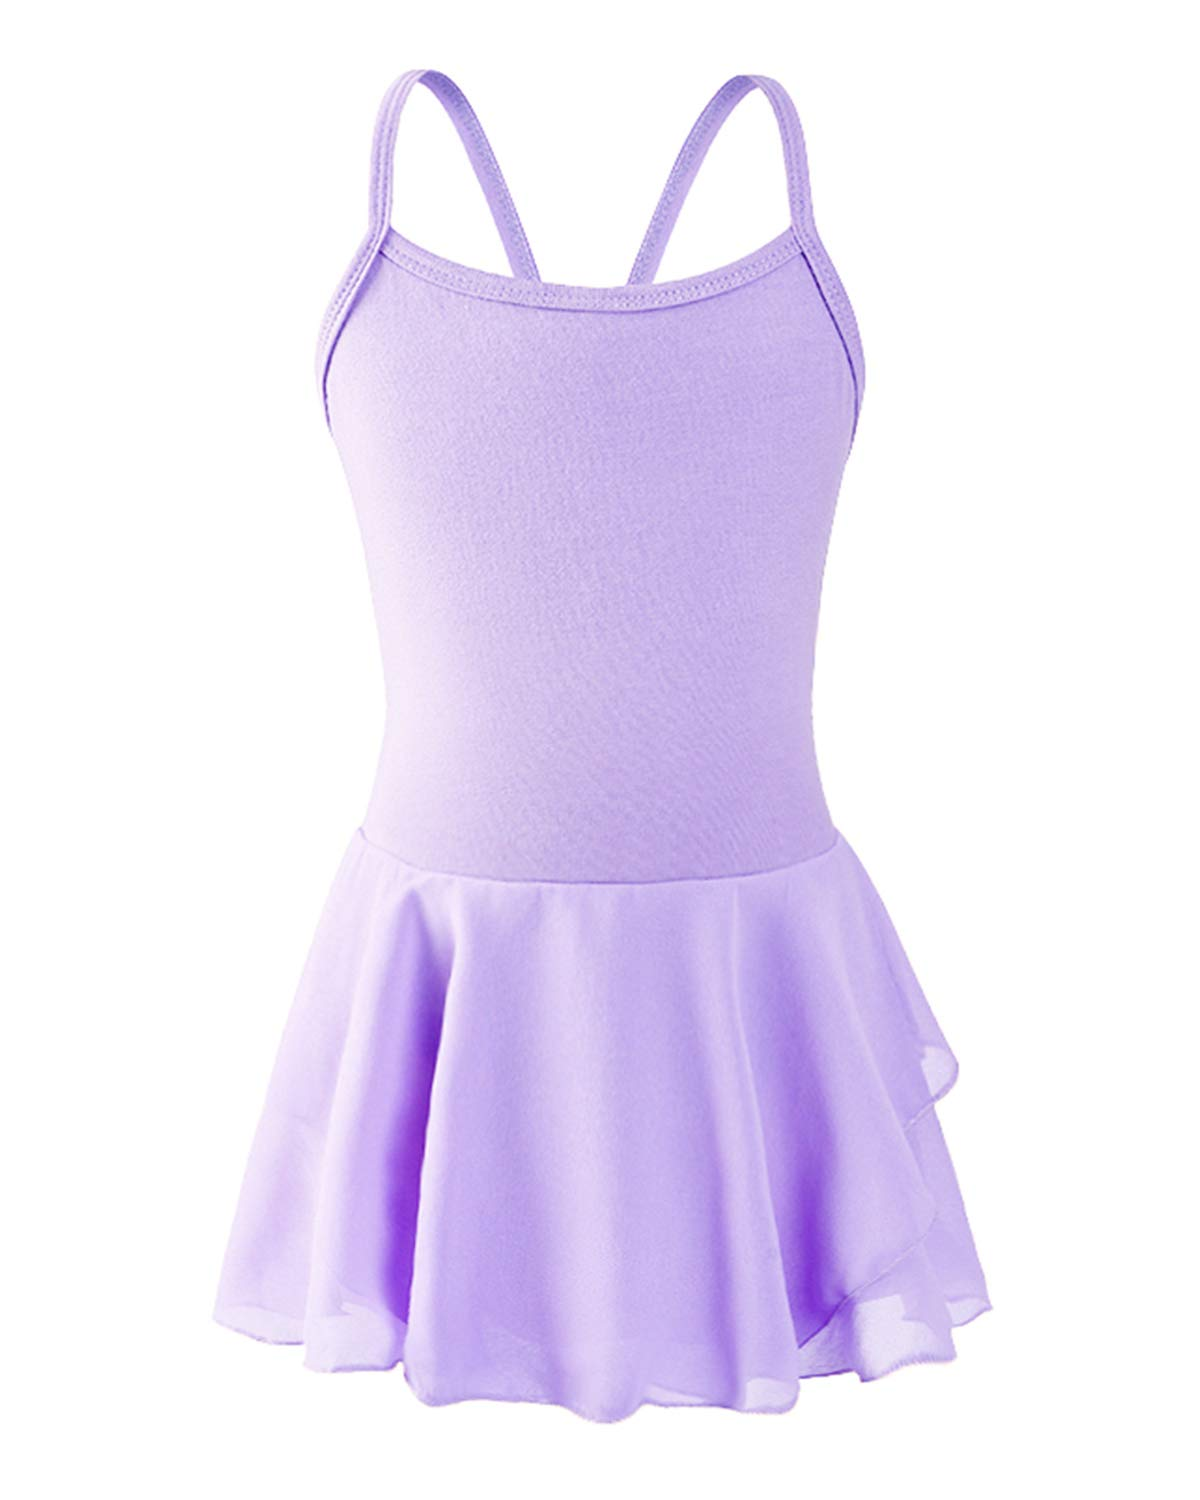 Stelle Girls Cotton Camisole Dress Leotard For Dance Ballet Purple S